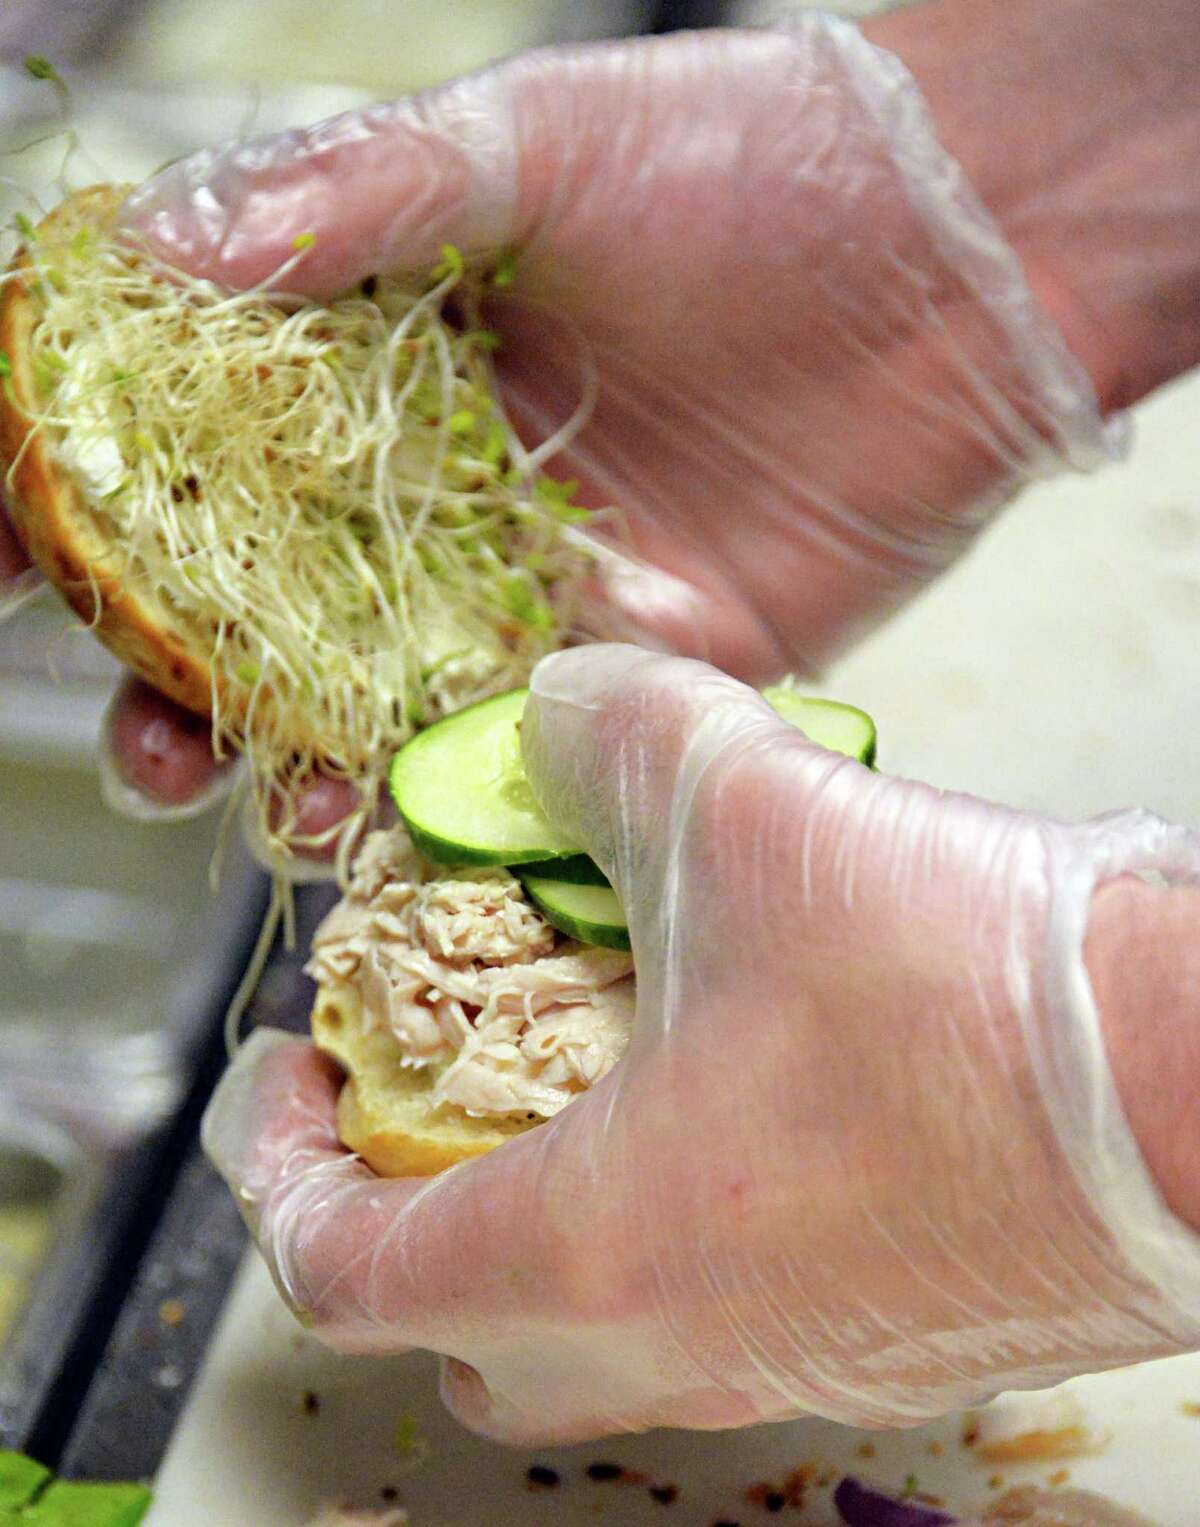 2. I worked in a sub shop in high school making $2.10 an hour. (John Carl D'Annibale / Times Union)